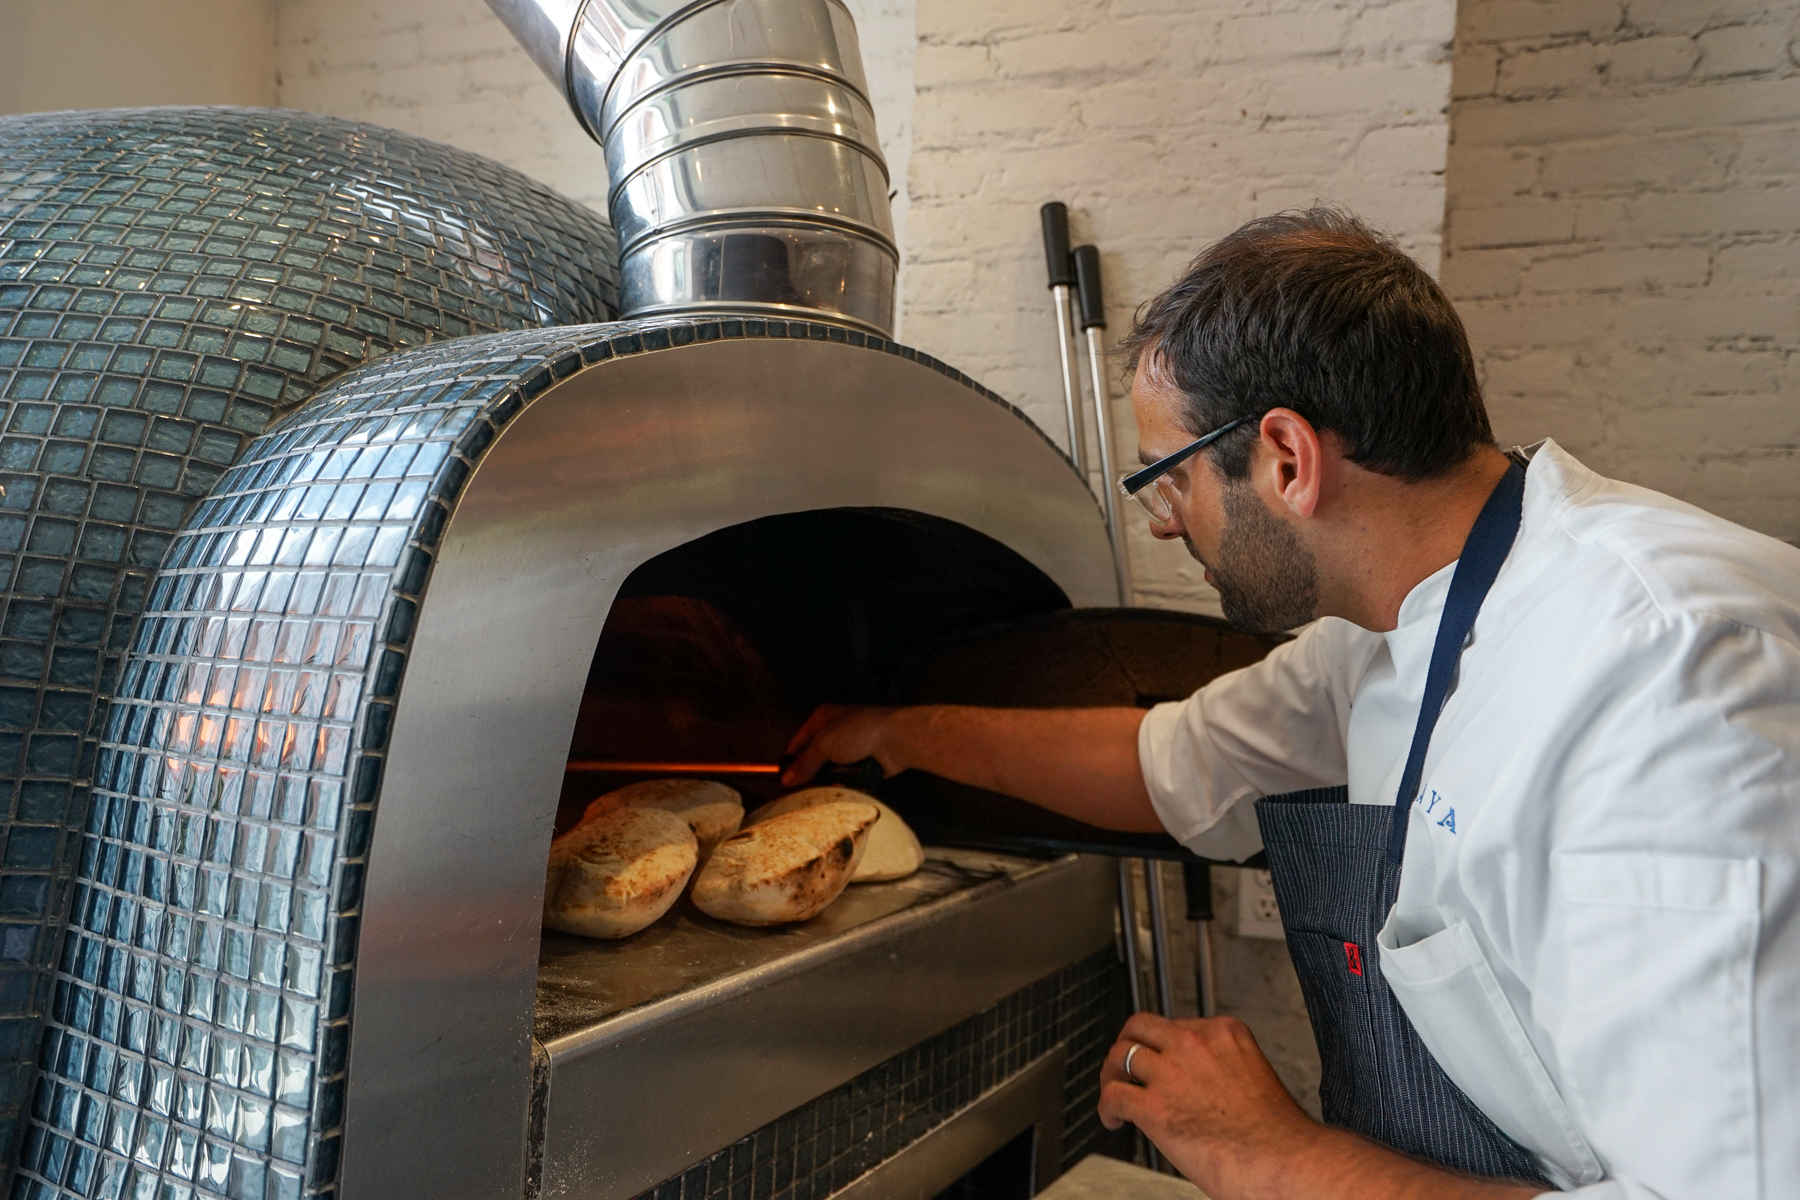 """Shaya bakes pita in a large oven that came at the expense of three extra tables. """"That's what needed to happen in order for us to make the best pita bread we could,"""" he says. (Photo: Paul Broussard)"""